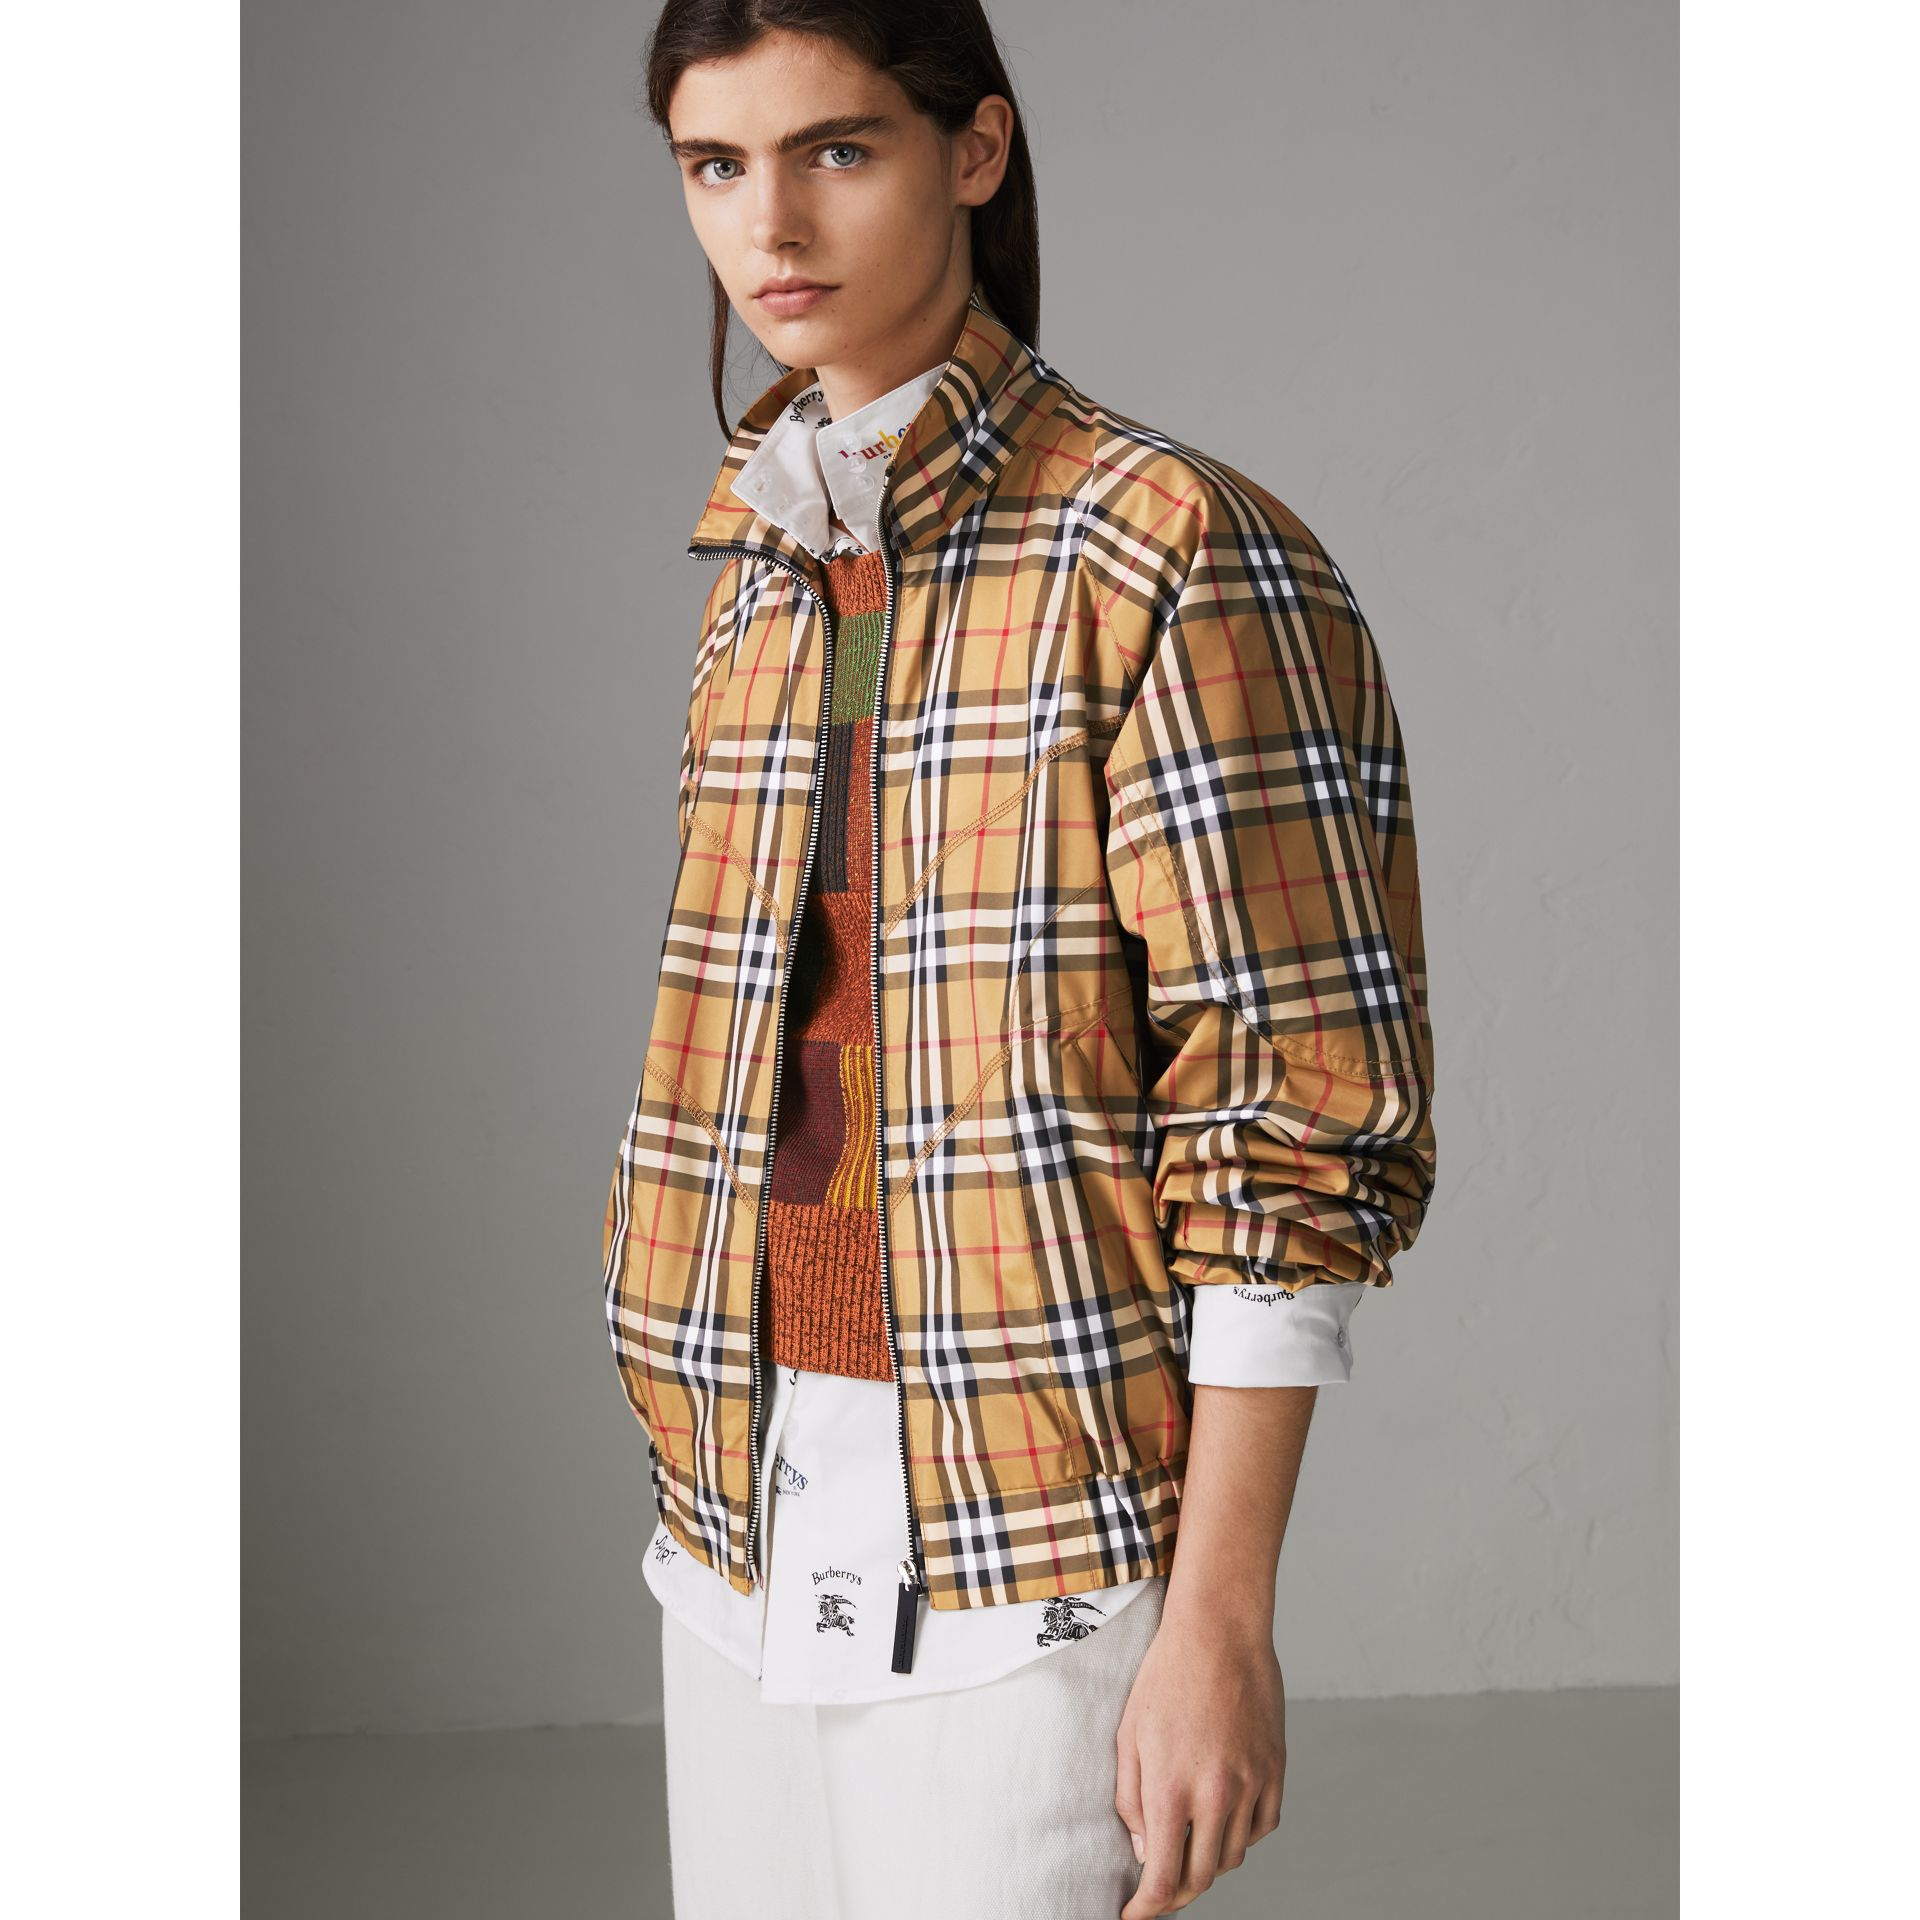 Topstitch Detail Vintage Check Harrington Jacket in Antique Yellow - Women | Burberry Australia - gallery image 5